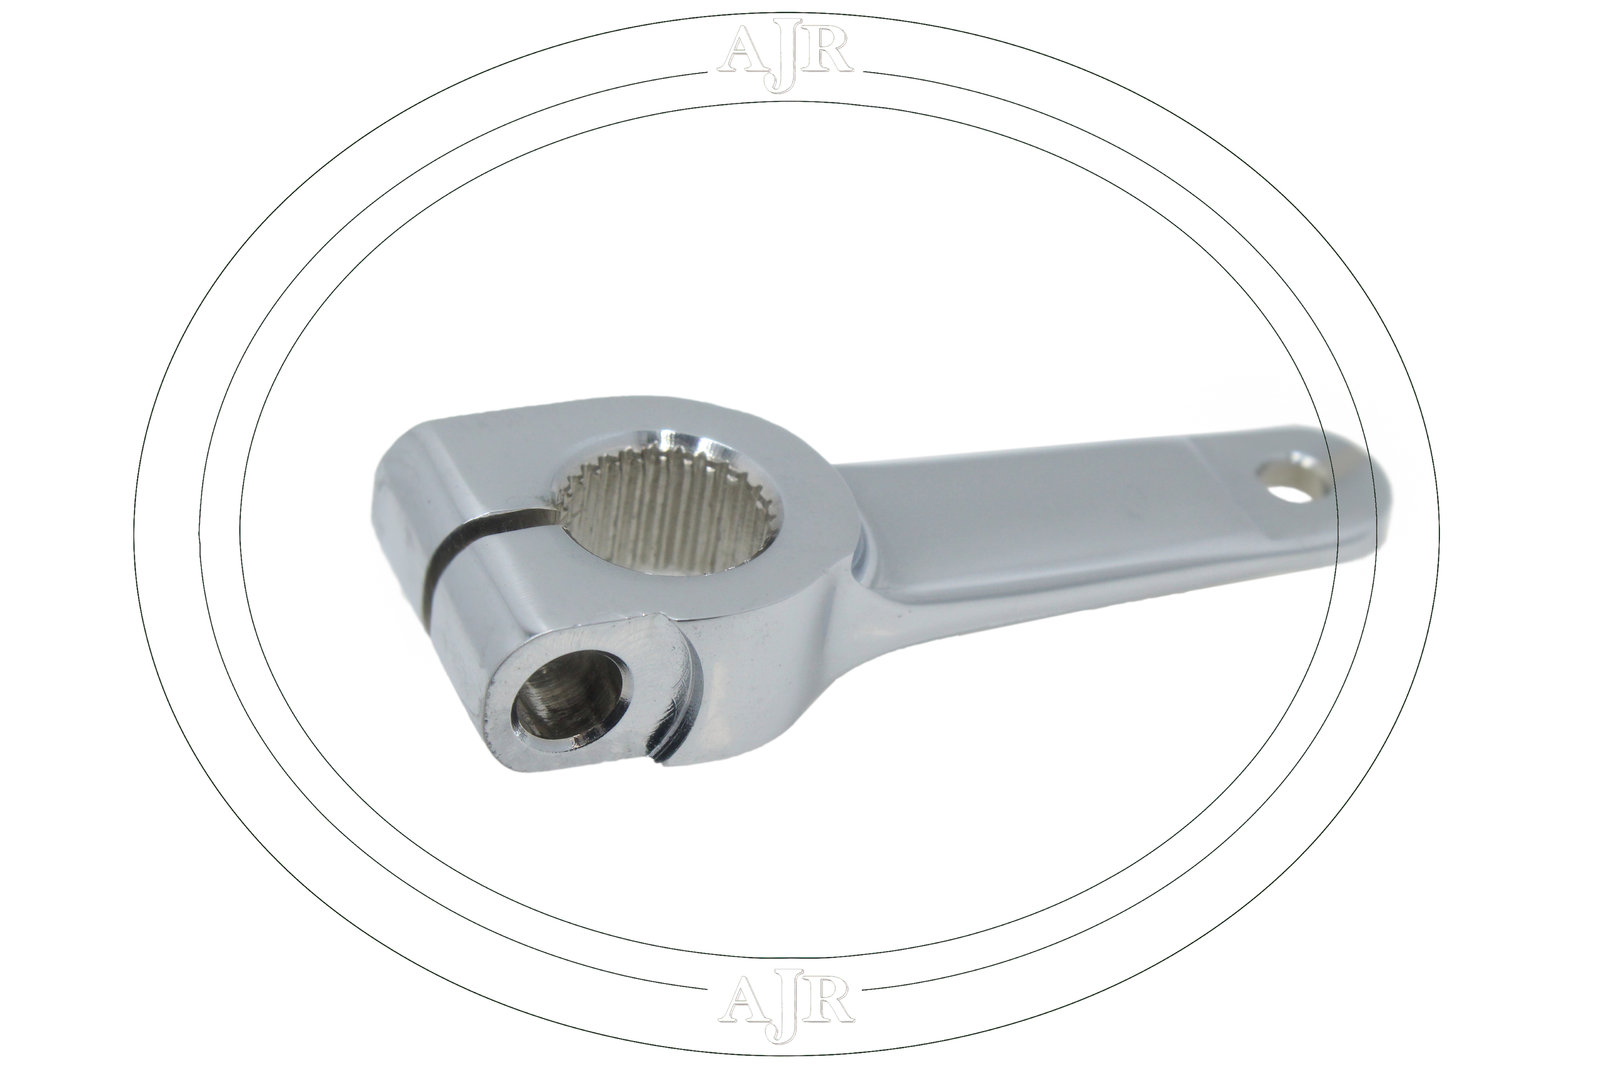 Gearshift lever right side - AJR MOTORCYCLES AND PARTS ON-LINE